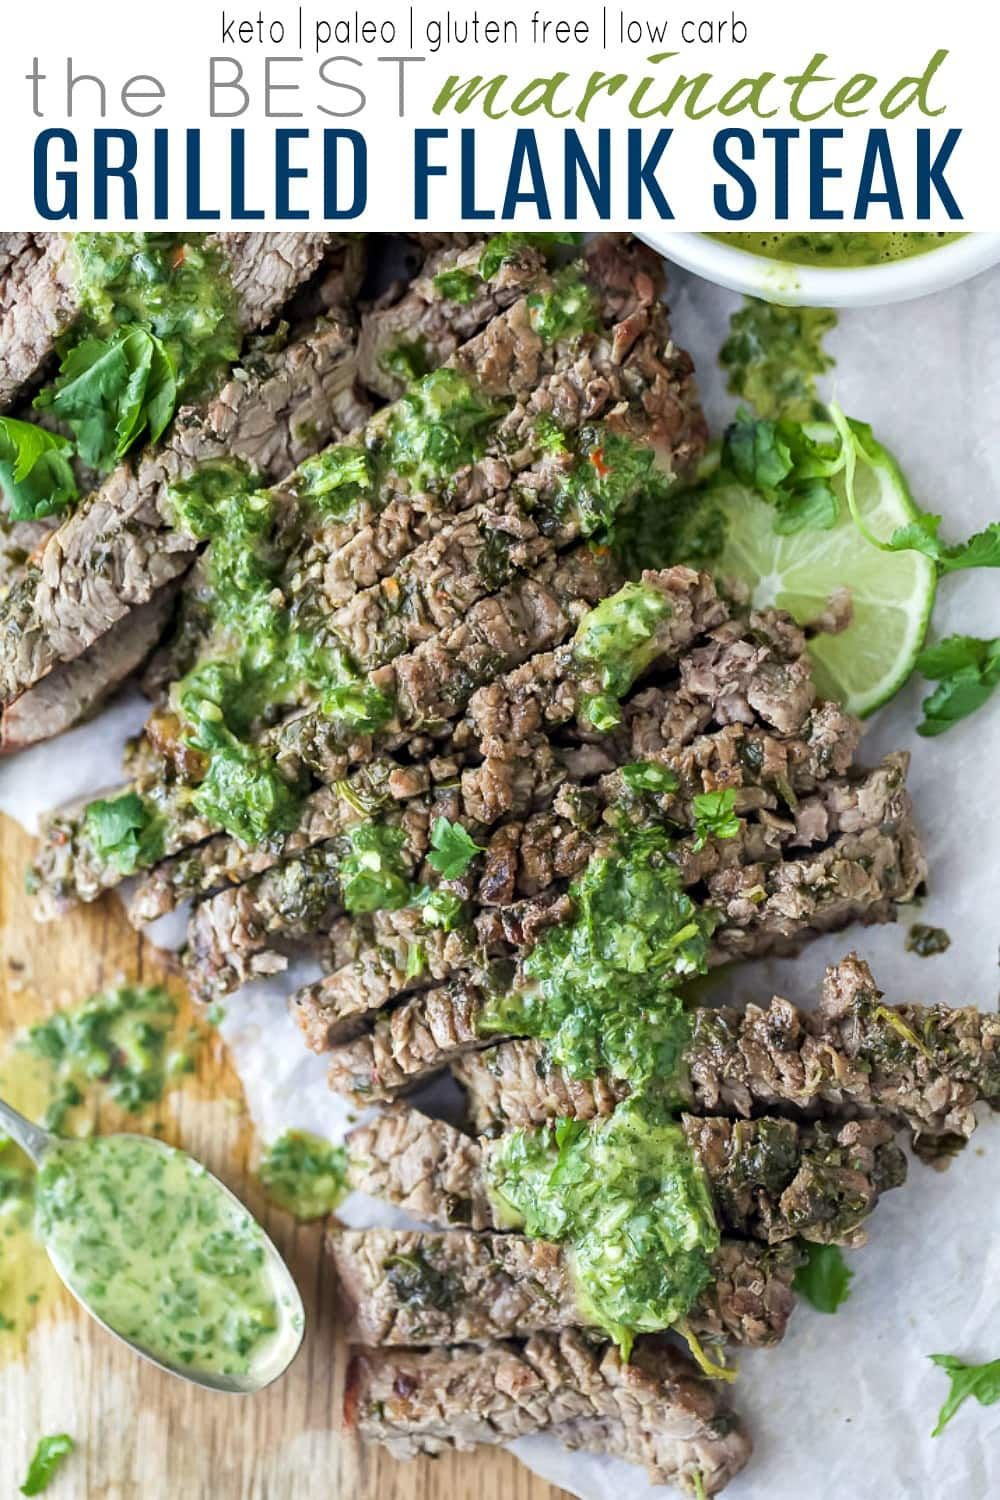 The Best Marinated Grilled Flank Steak | Recipe | Flank ...